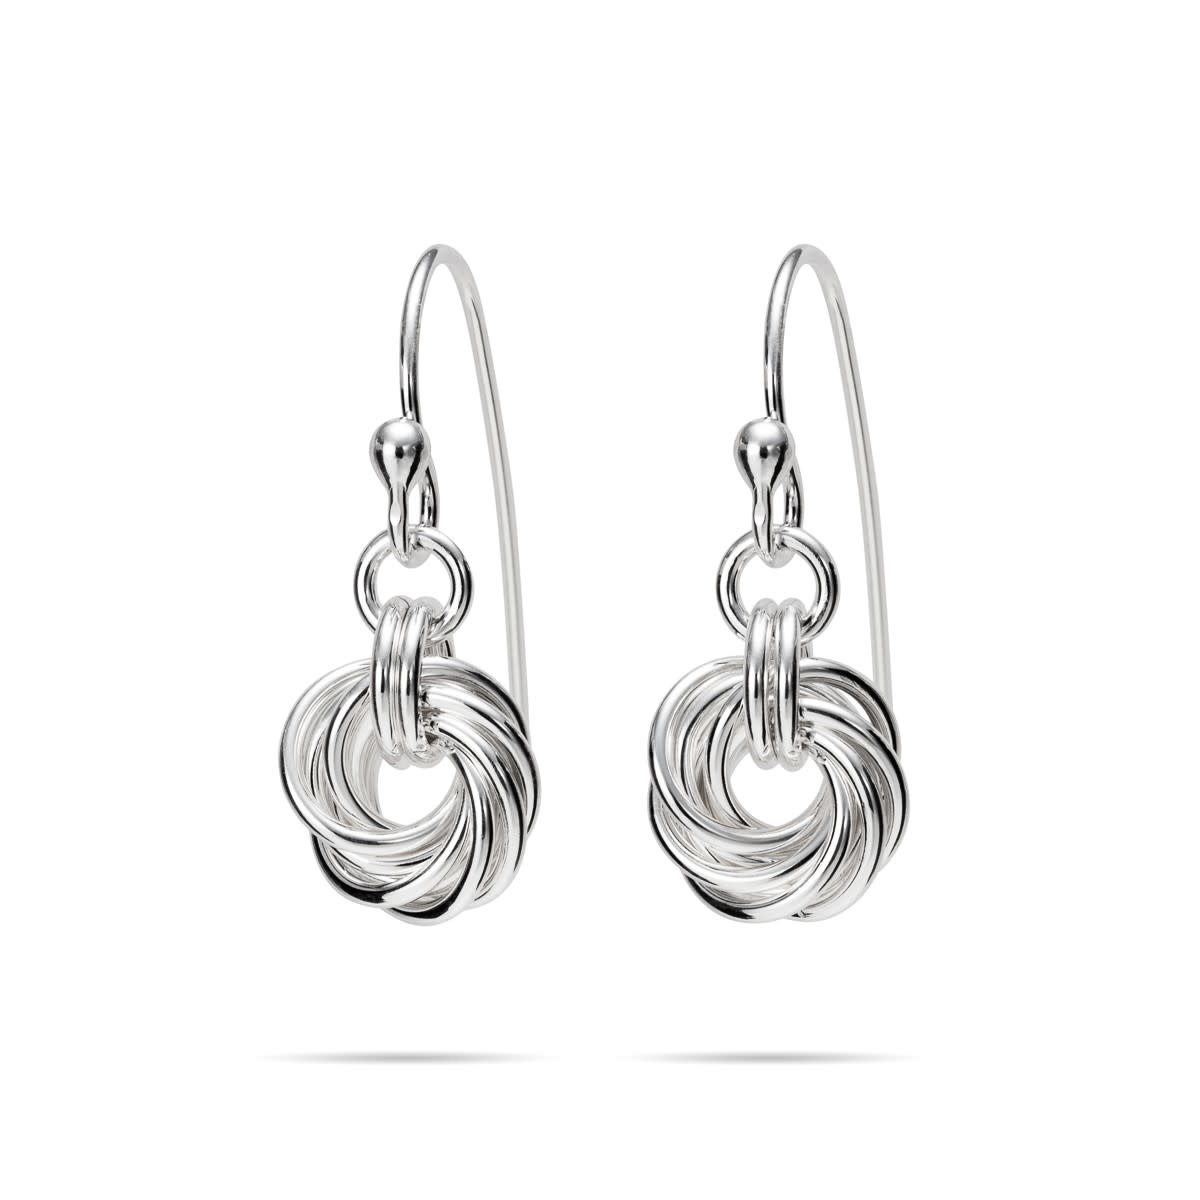 Mikel Grant Jewelry Love Knot Earrings